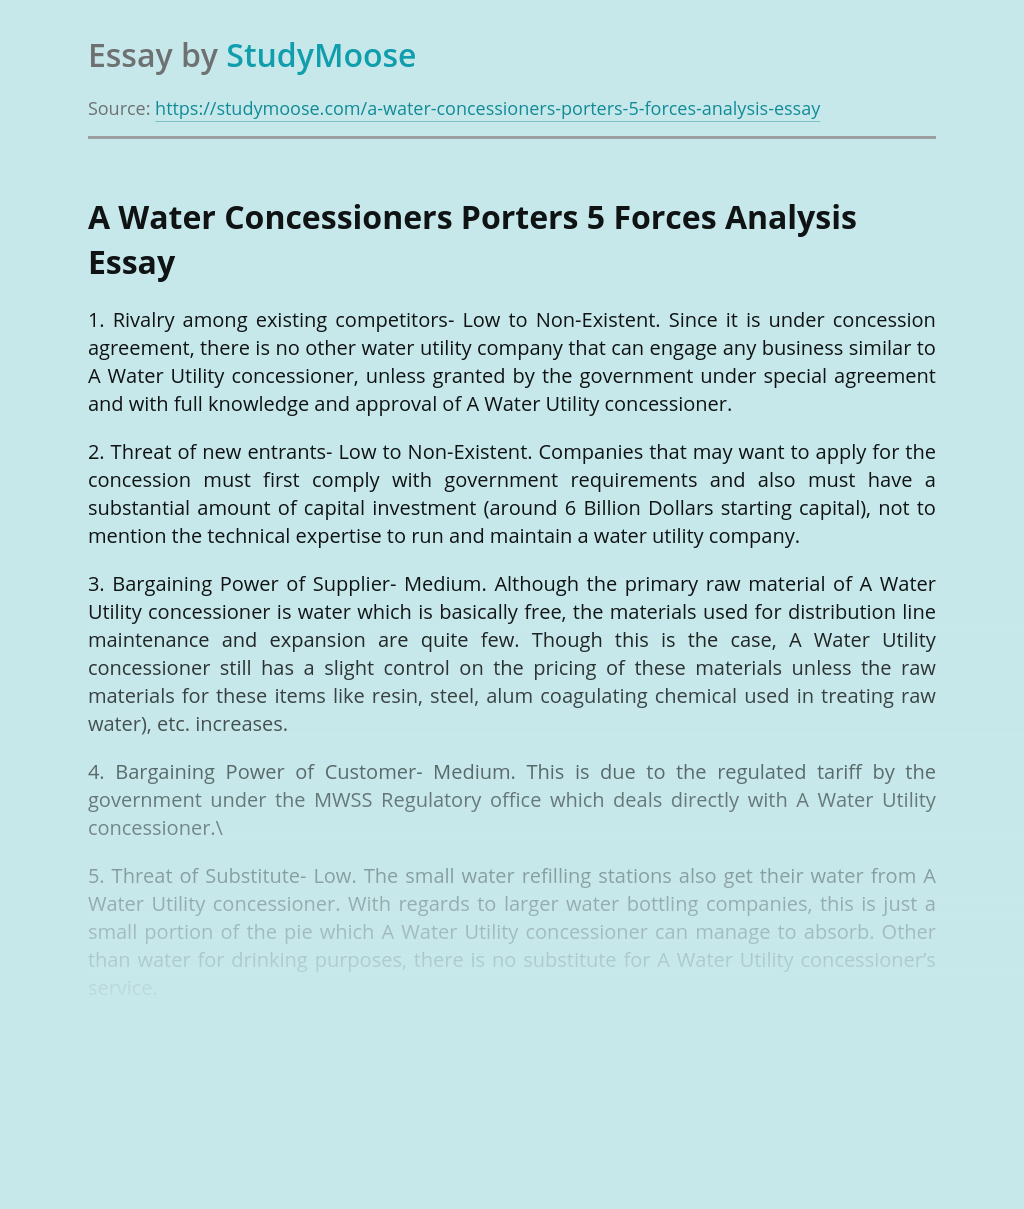 A Water Concessioners Porters 5 Forces Analysis